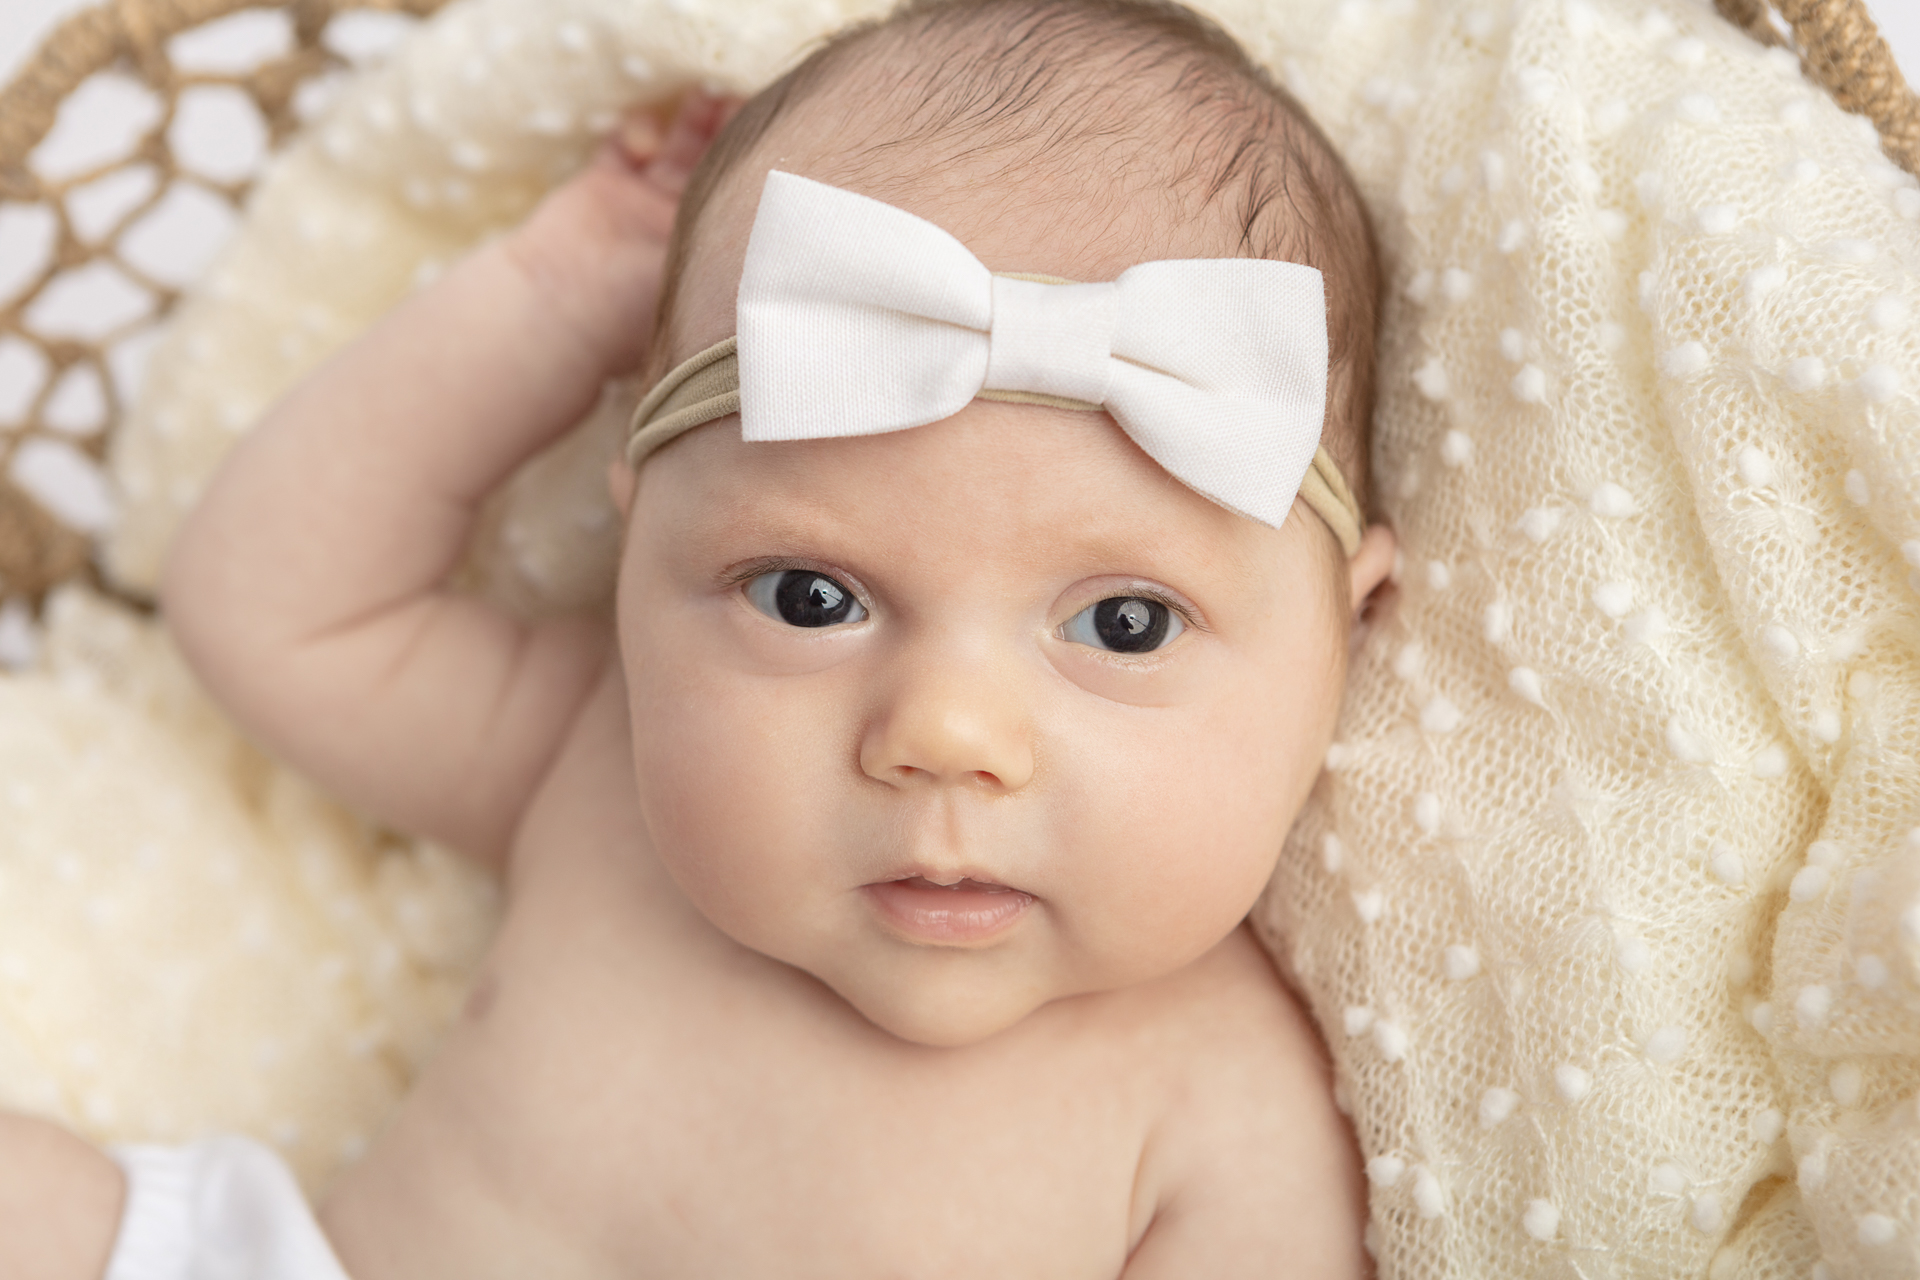 awake newborn baby girl with big brown eyes, wearing a stretch newborn headband with a white bow